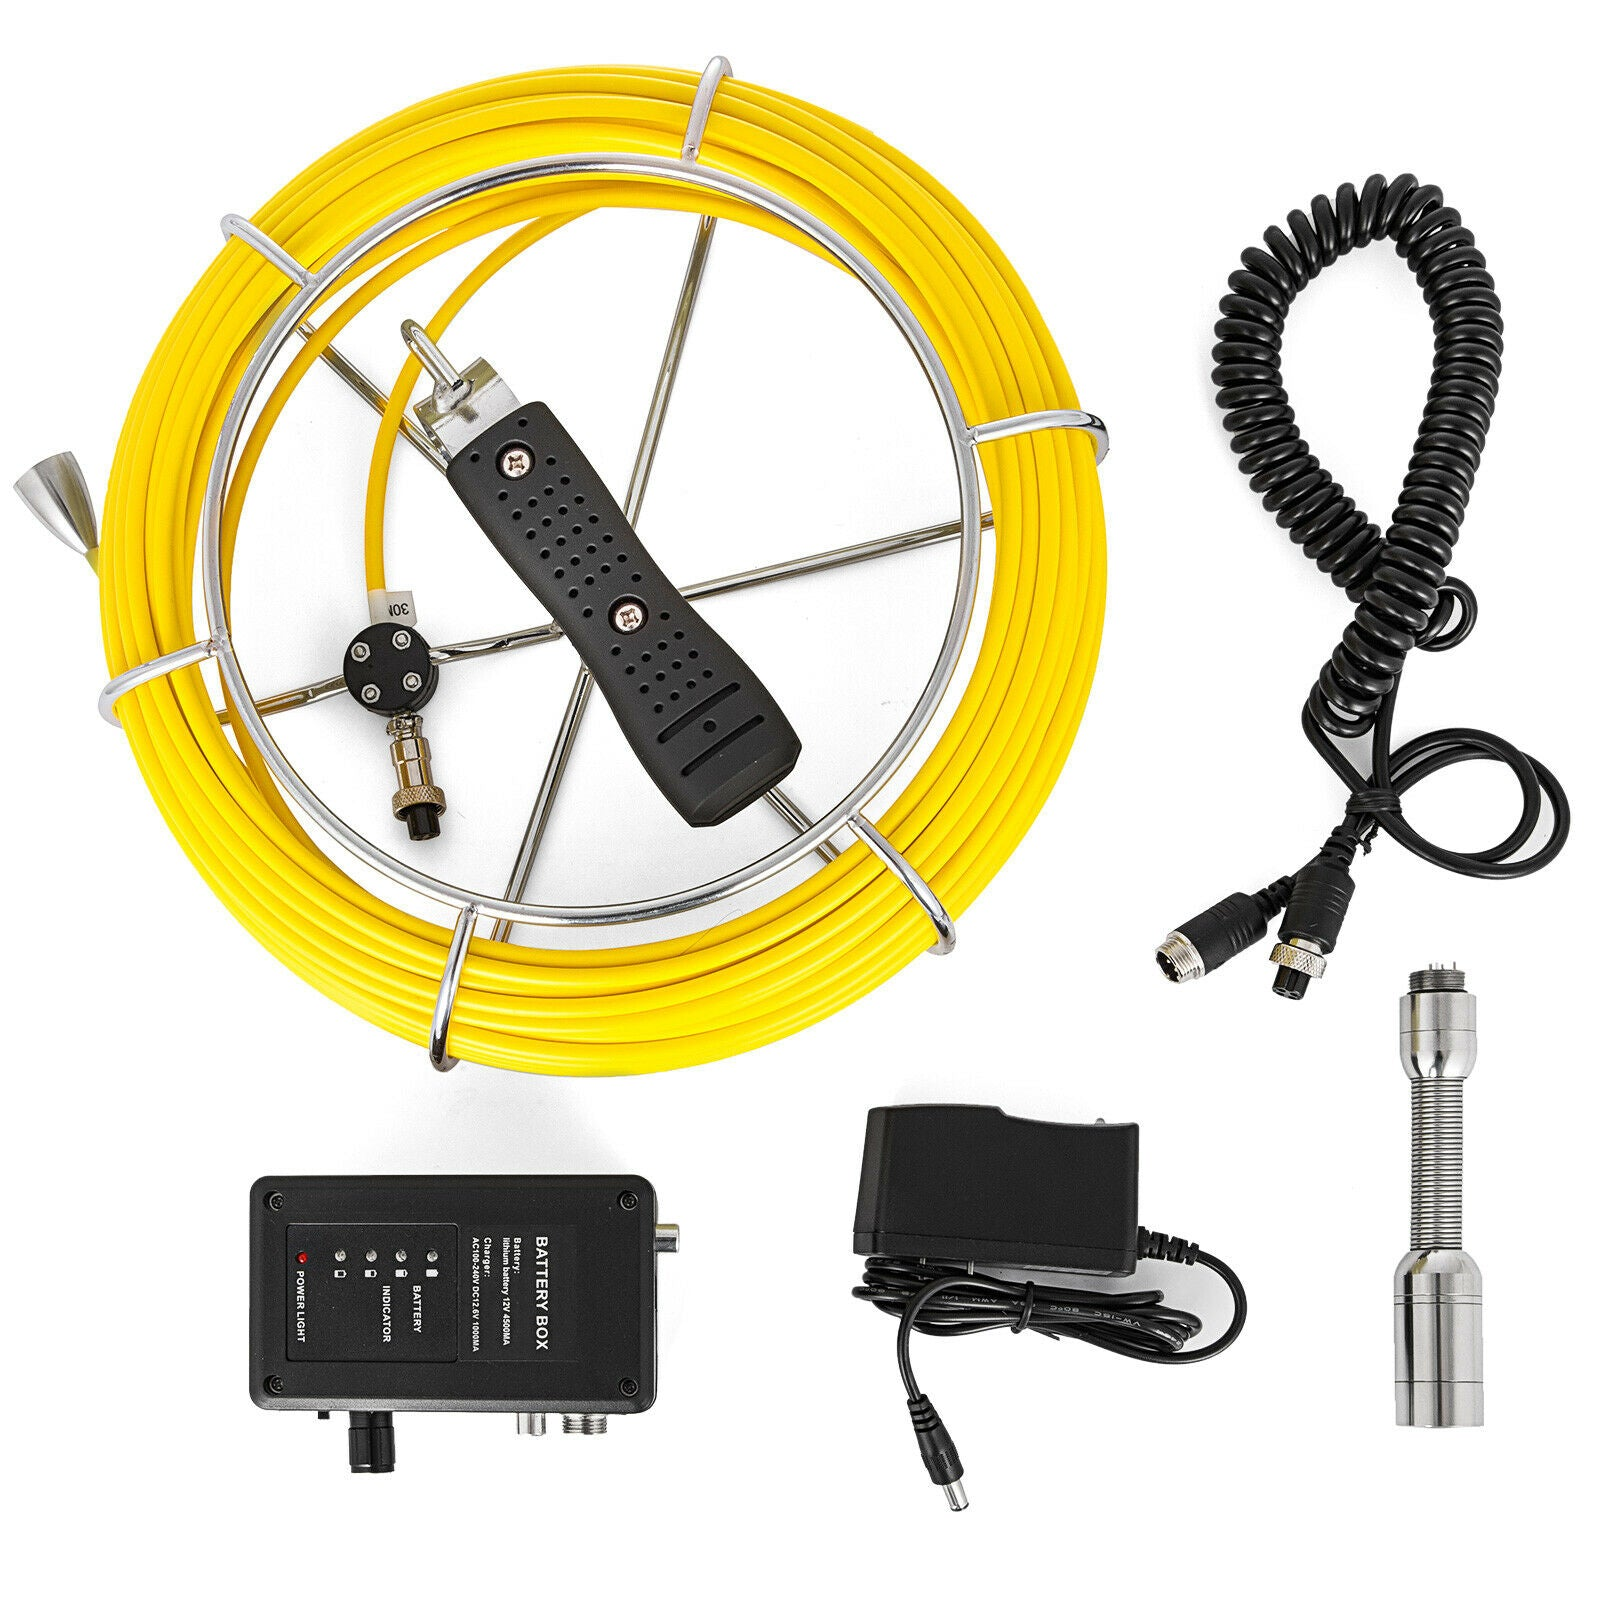 "50m 7"" Pipe Pipeline Drain Inspection Sewer Video Camera Inspection Camera+8gb"